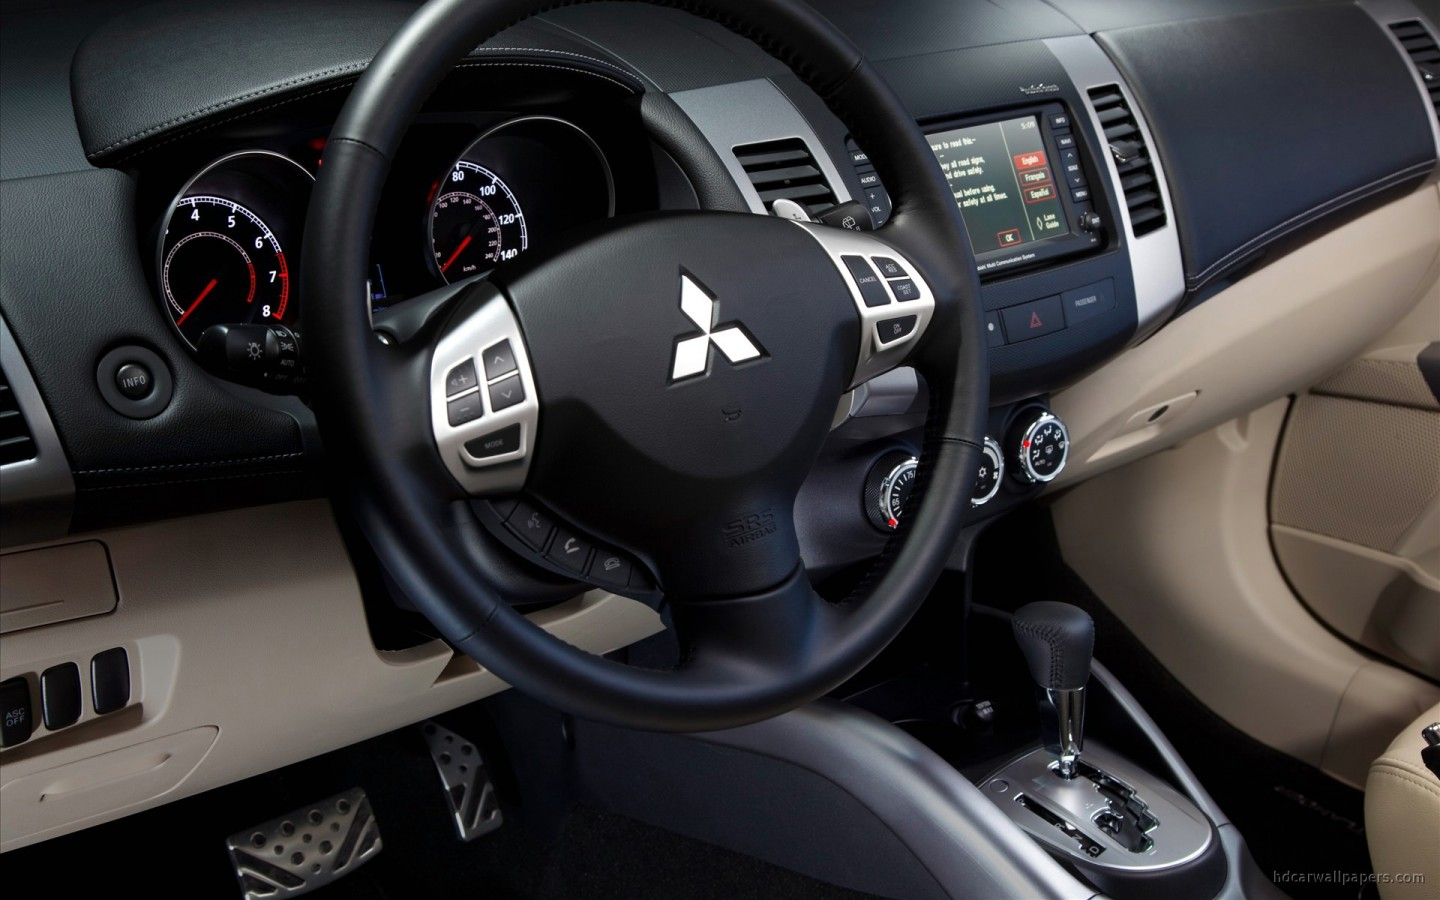 2010 Mitsubishi Outlander GT Interior Wallpaper HD Car